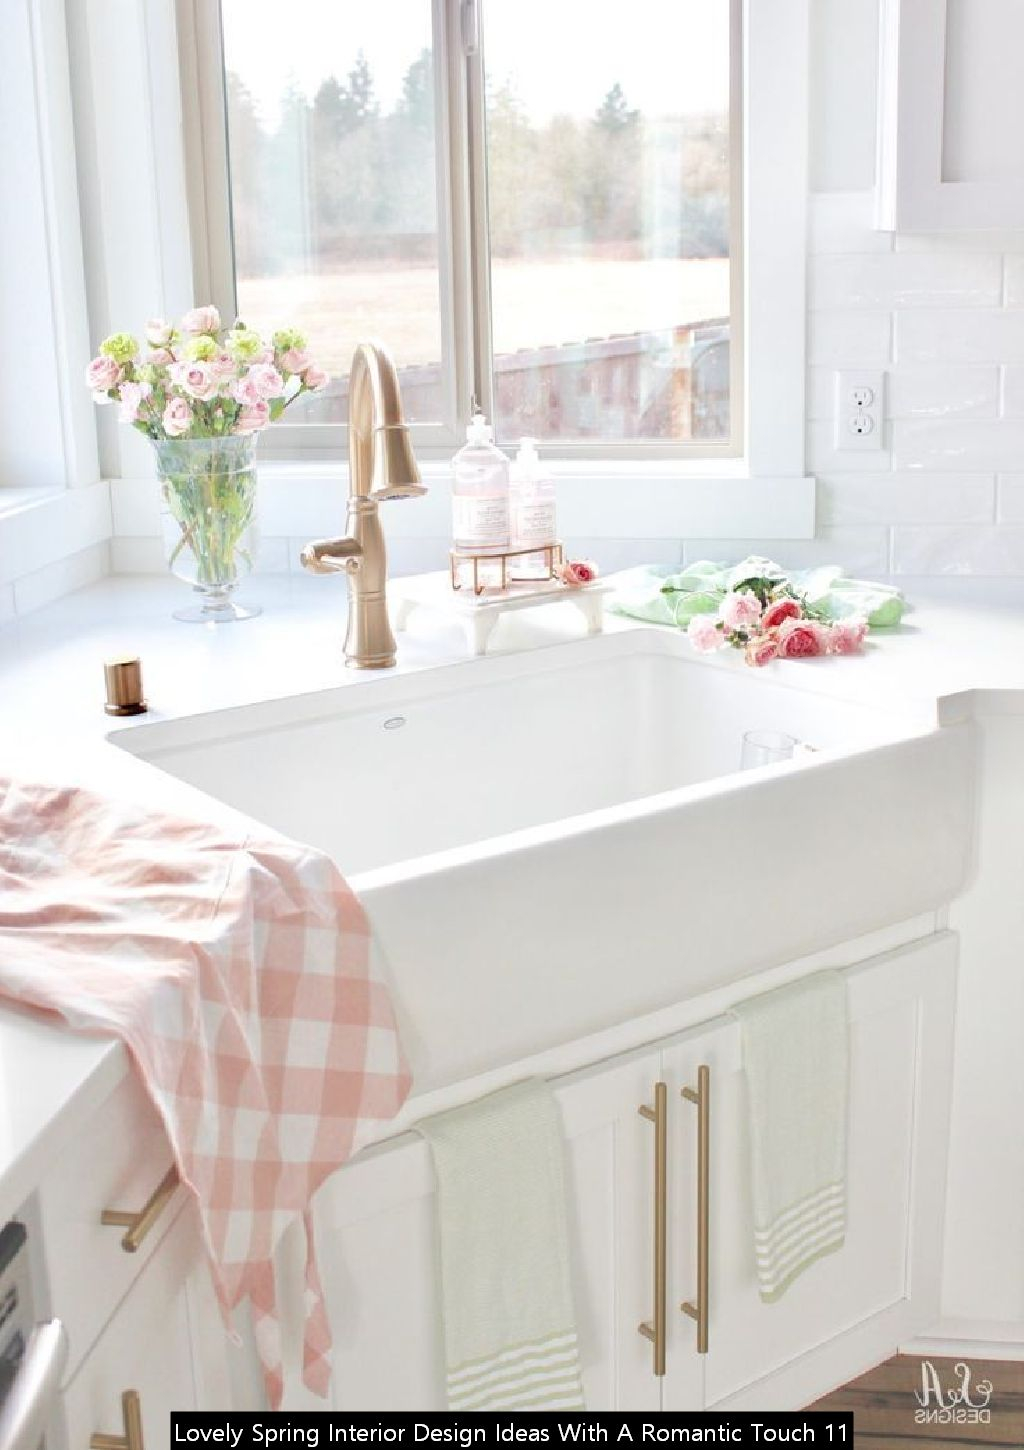 Lovely Spring Interior Design Ideas With A Romantic Touch 11